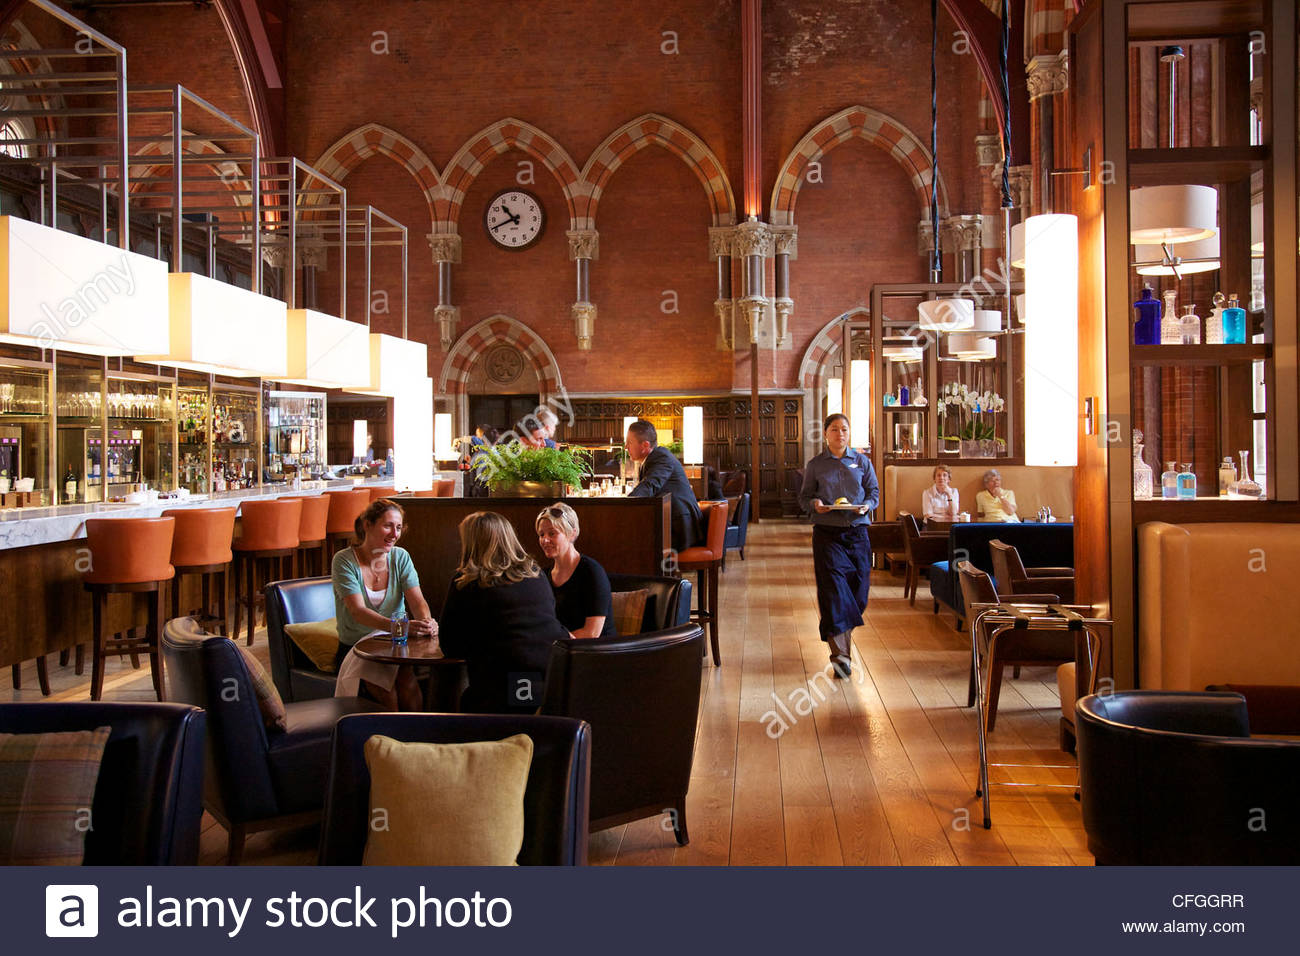 st pancras purchasing business diner reviews